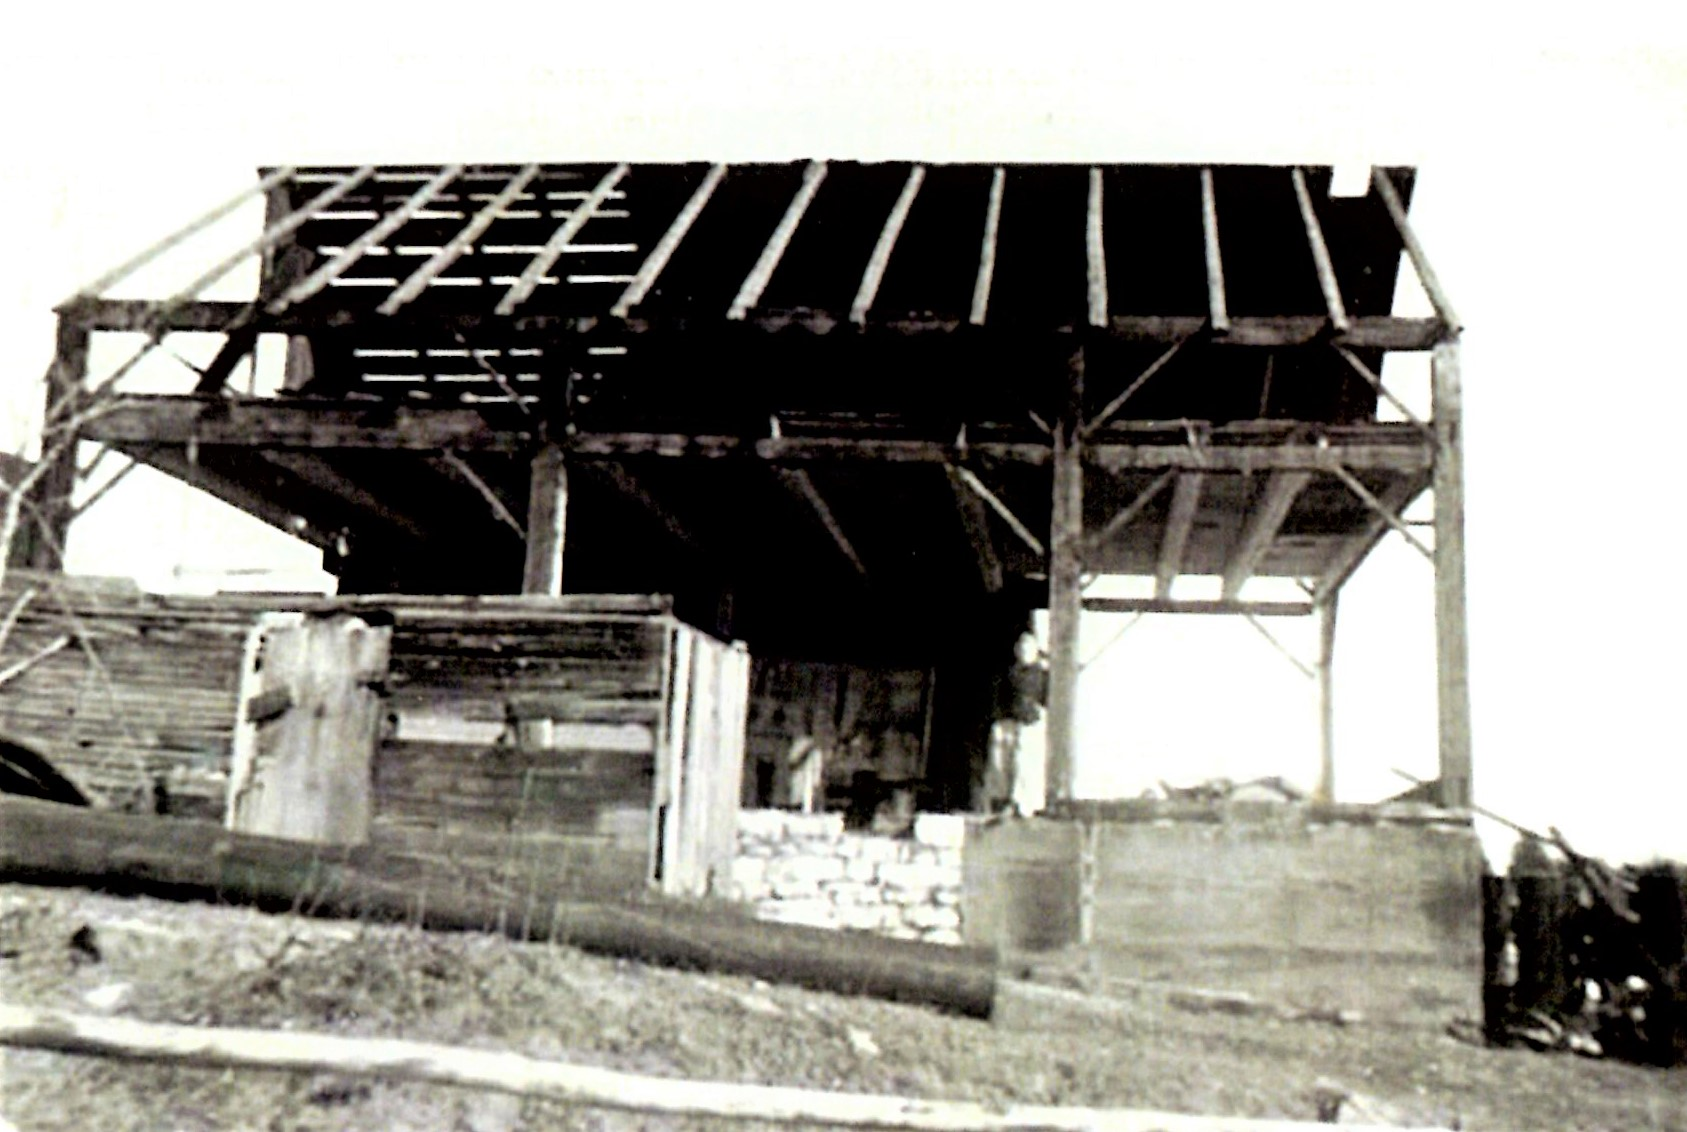 Cook cheese factory demolition c.1945 located at #144 Clemenger Rd